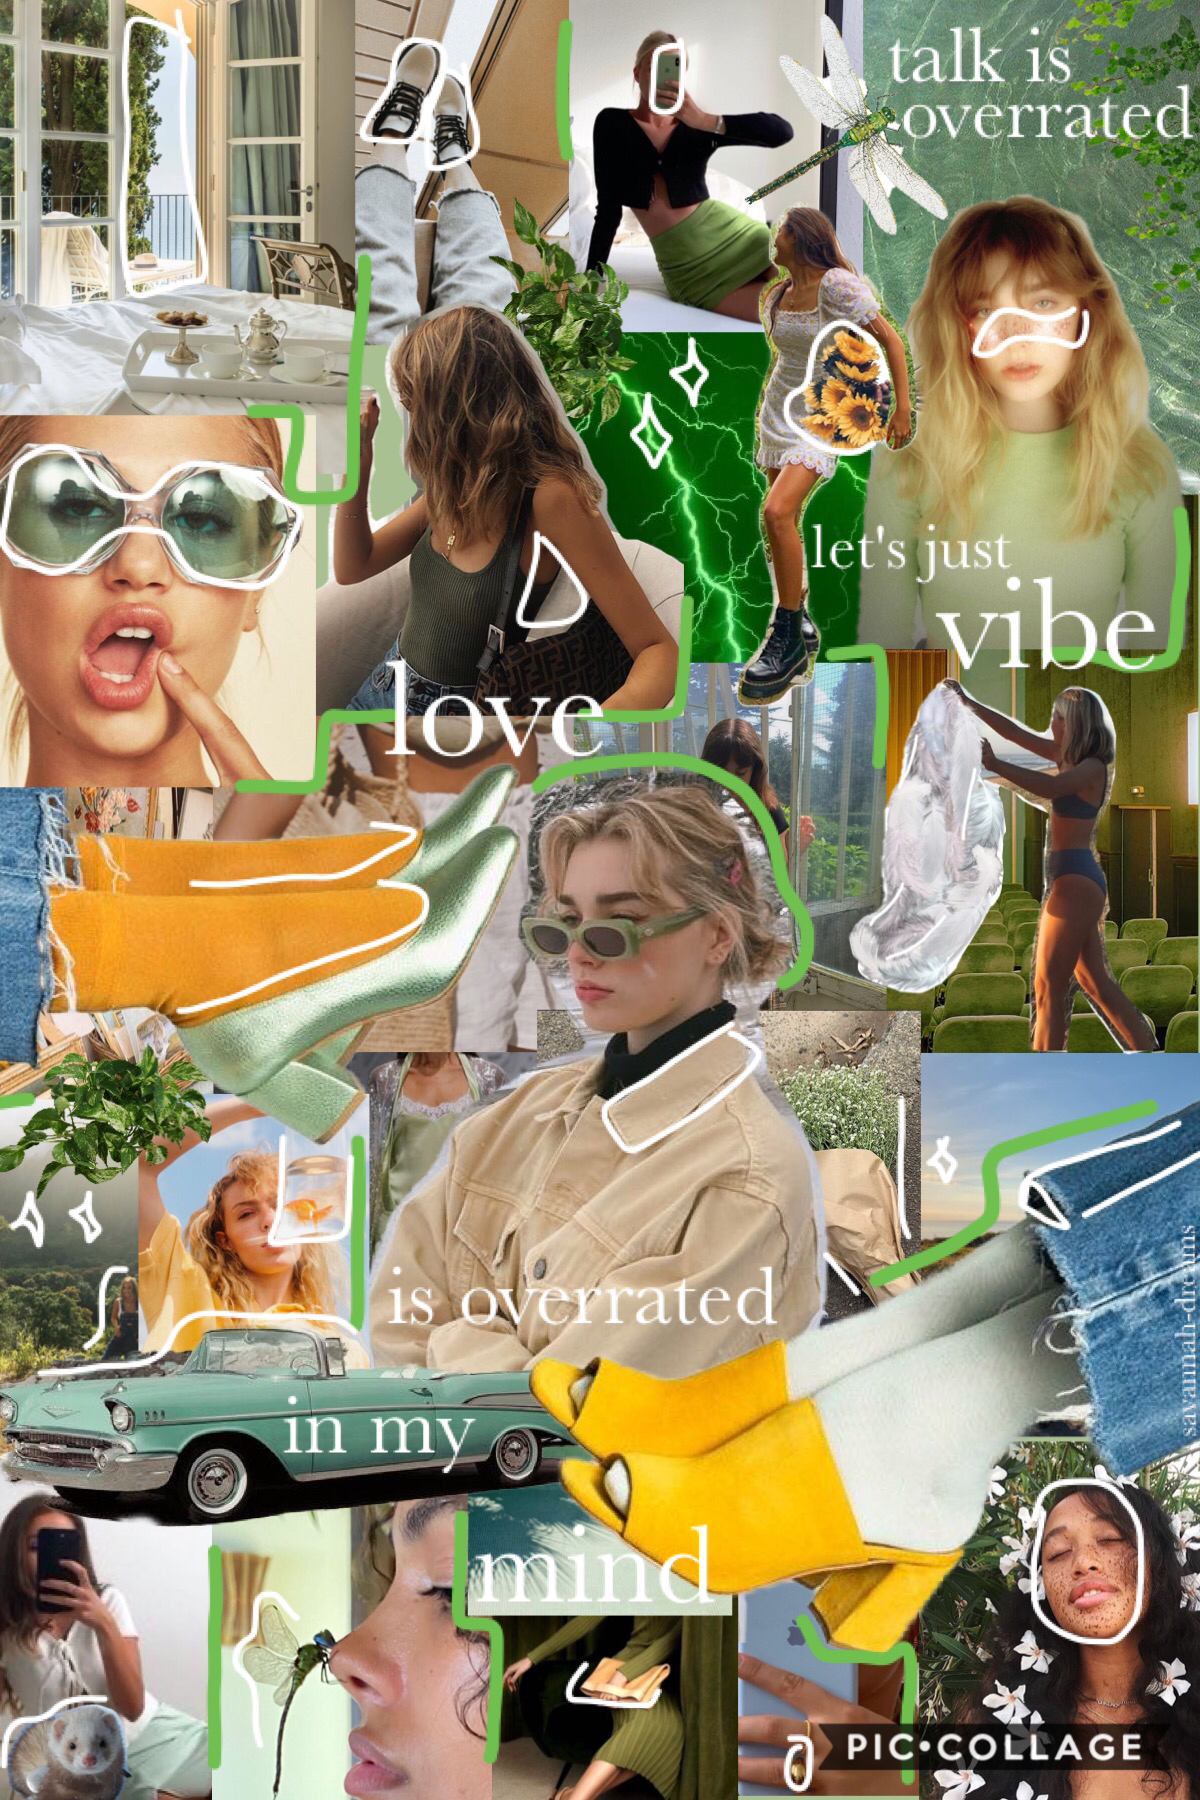 heyyyooo 👋🏼 finally a collage i'm excited to post!!!!!!!!! currently journaling 🌿🧚🏼♀️ lyrics from 'talk is overrated' by jeremy zucker 🥑🦦 so rainy and only abt 12 degrees C over here 🌧 gonna try to do quality over quality for future collages ✌🏼check remi